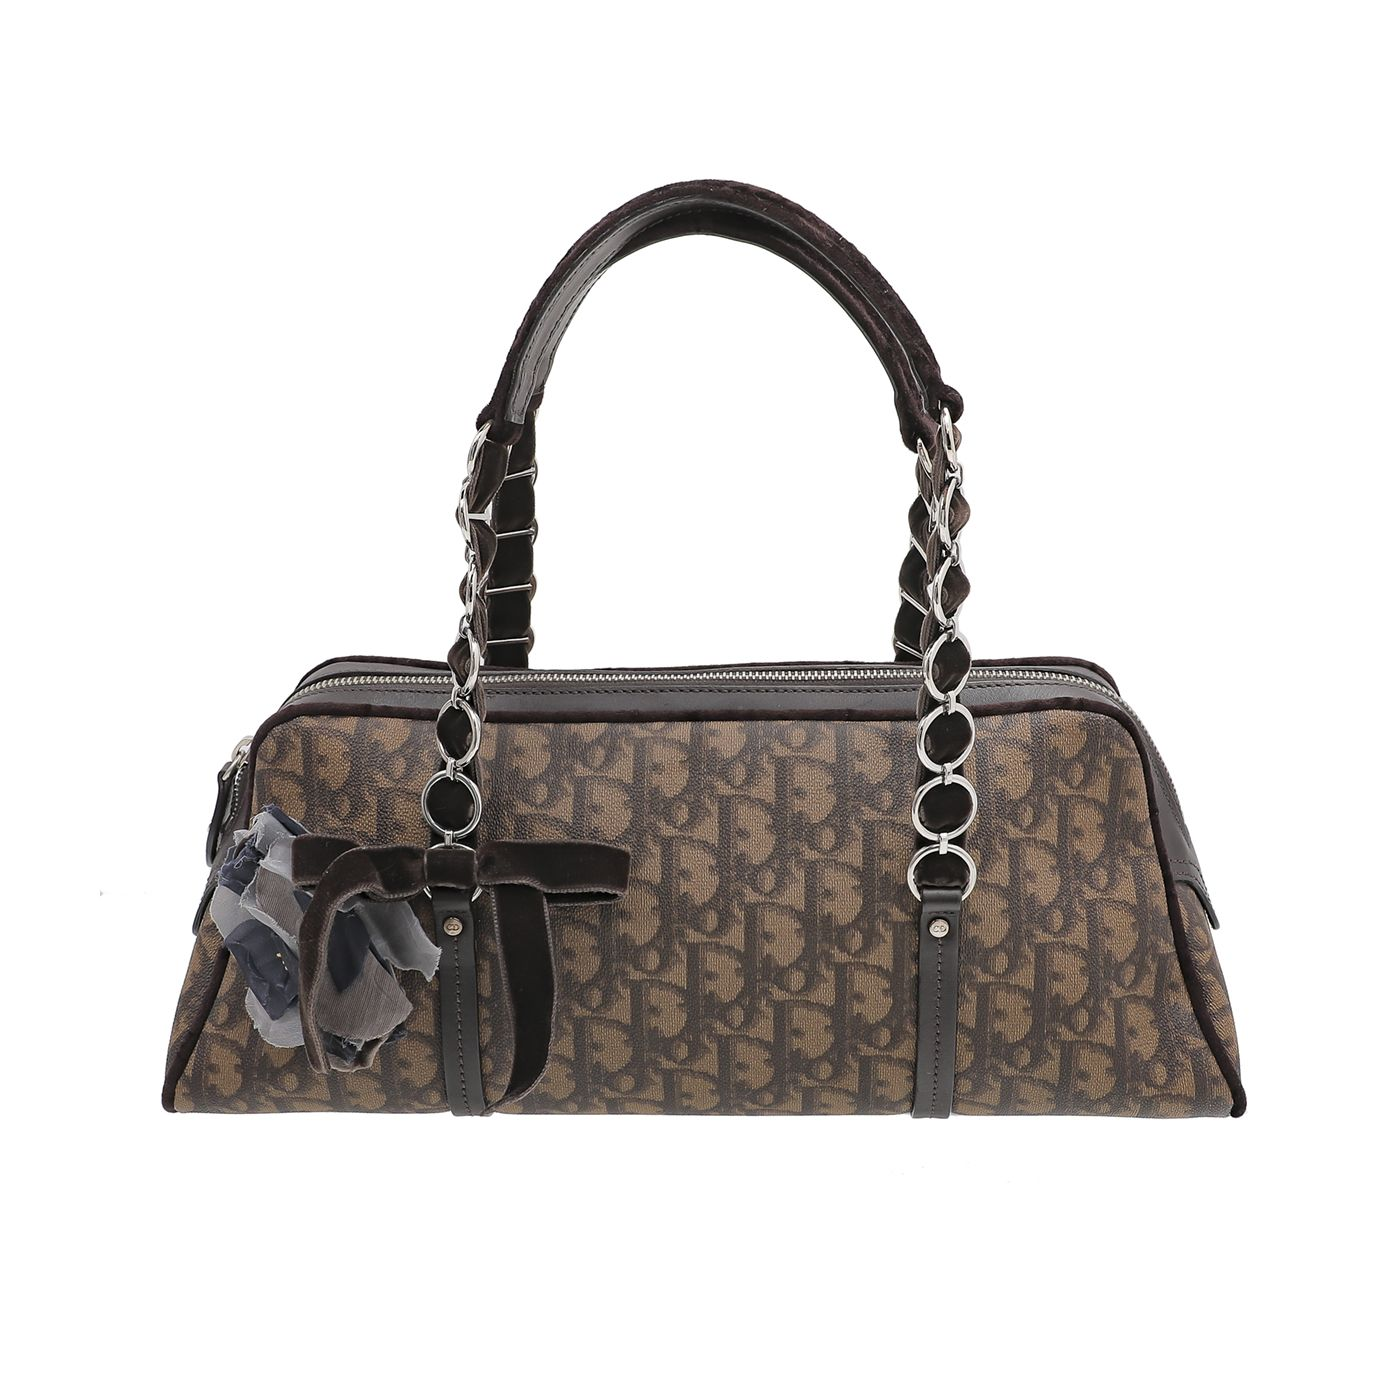 Christian Dior Brown Romantique Trotter Tote Bag